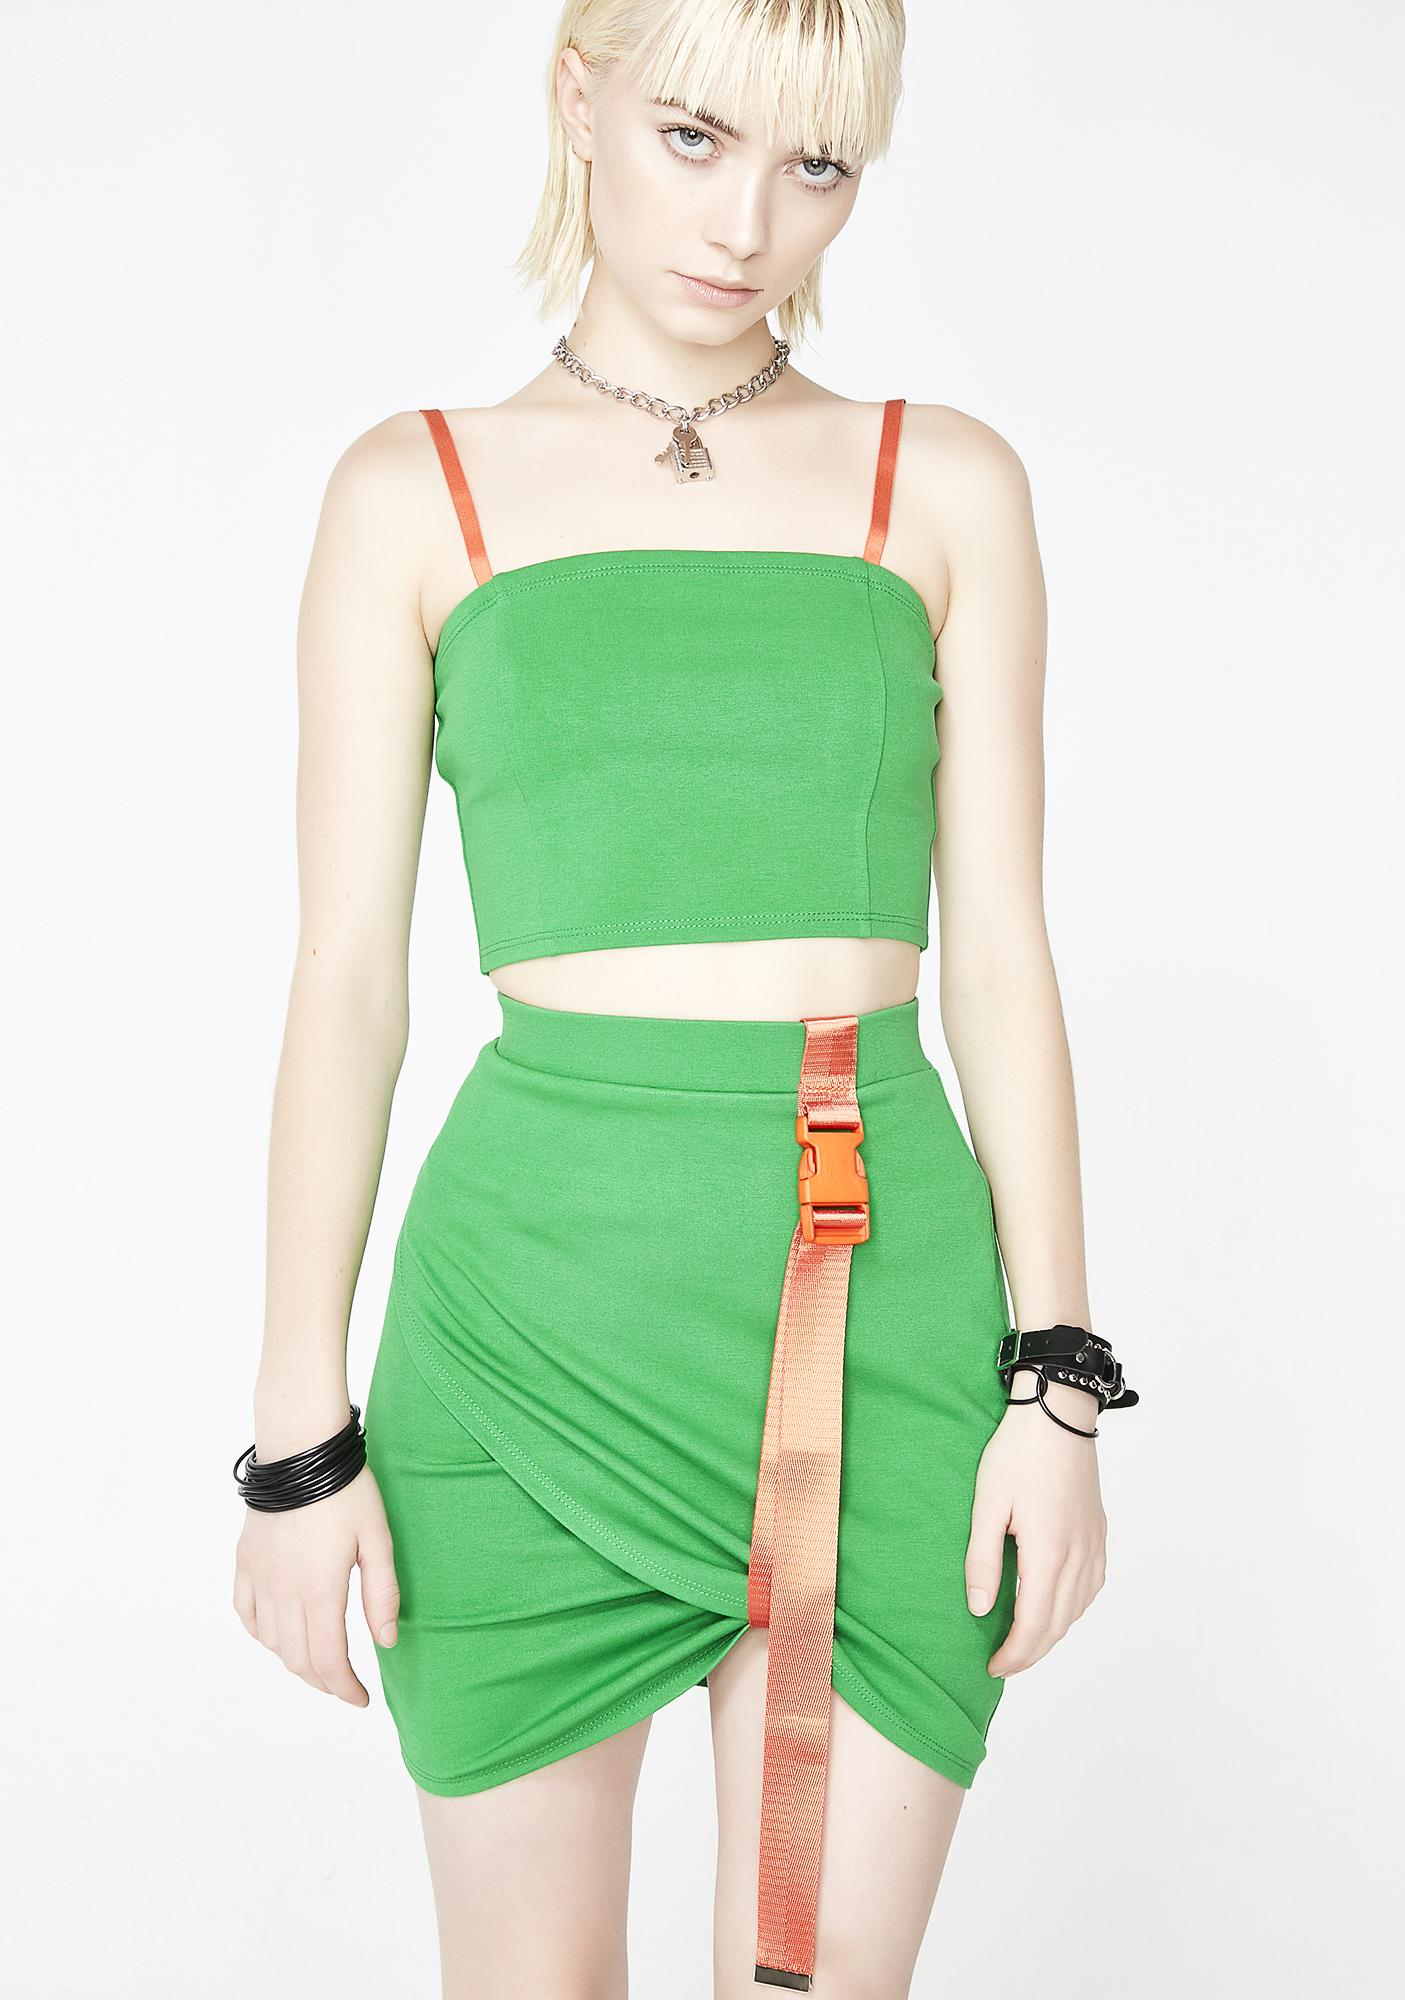 Strapped In Buckle Set